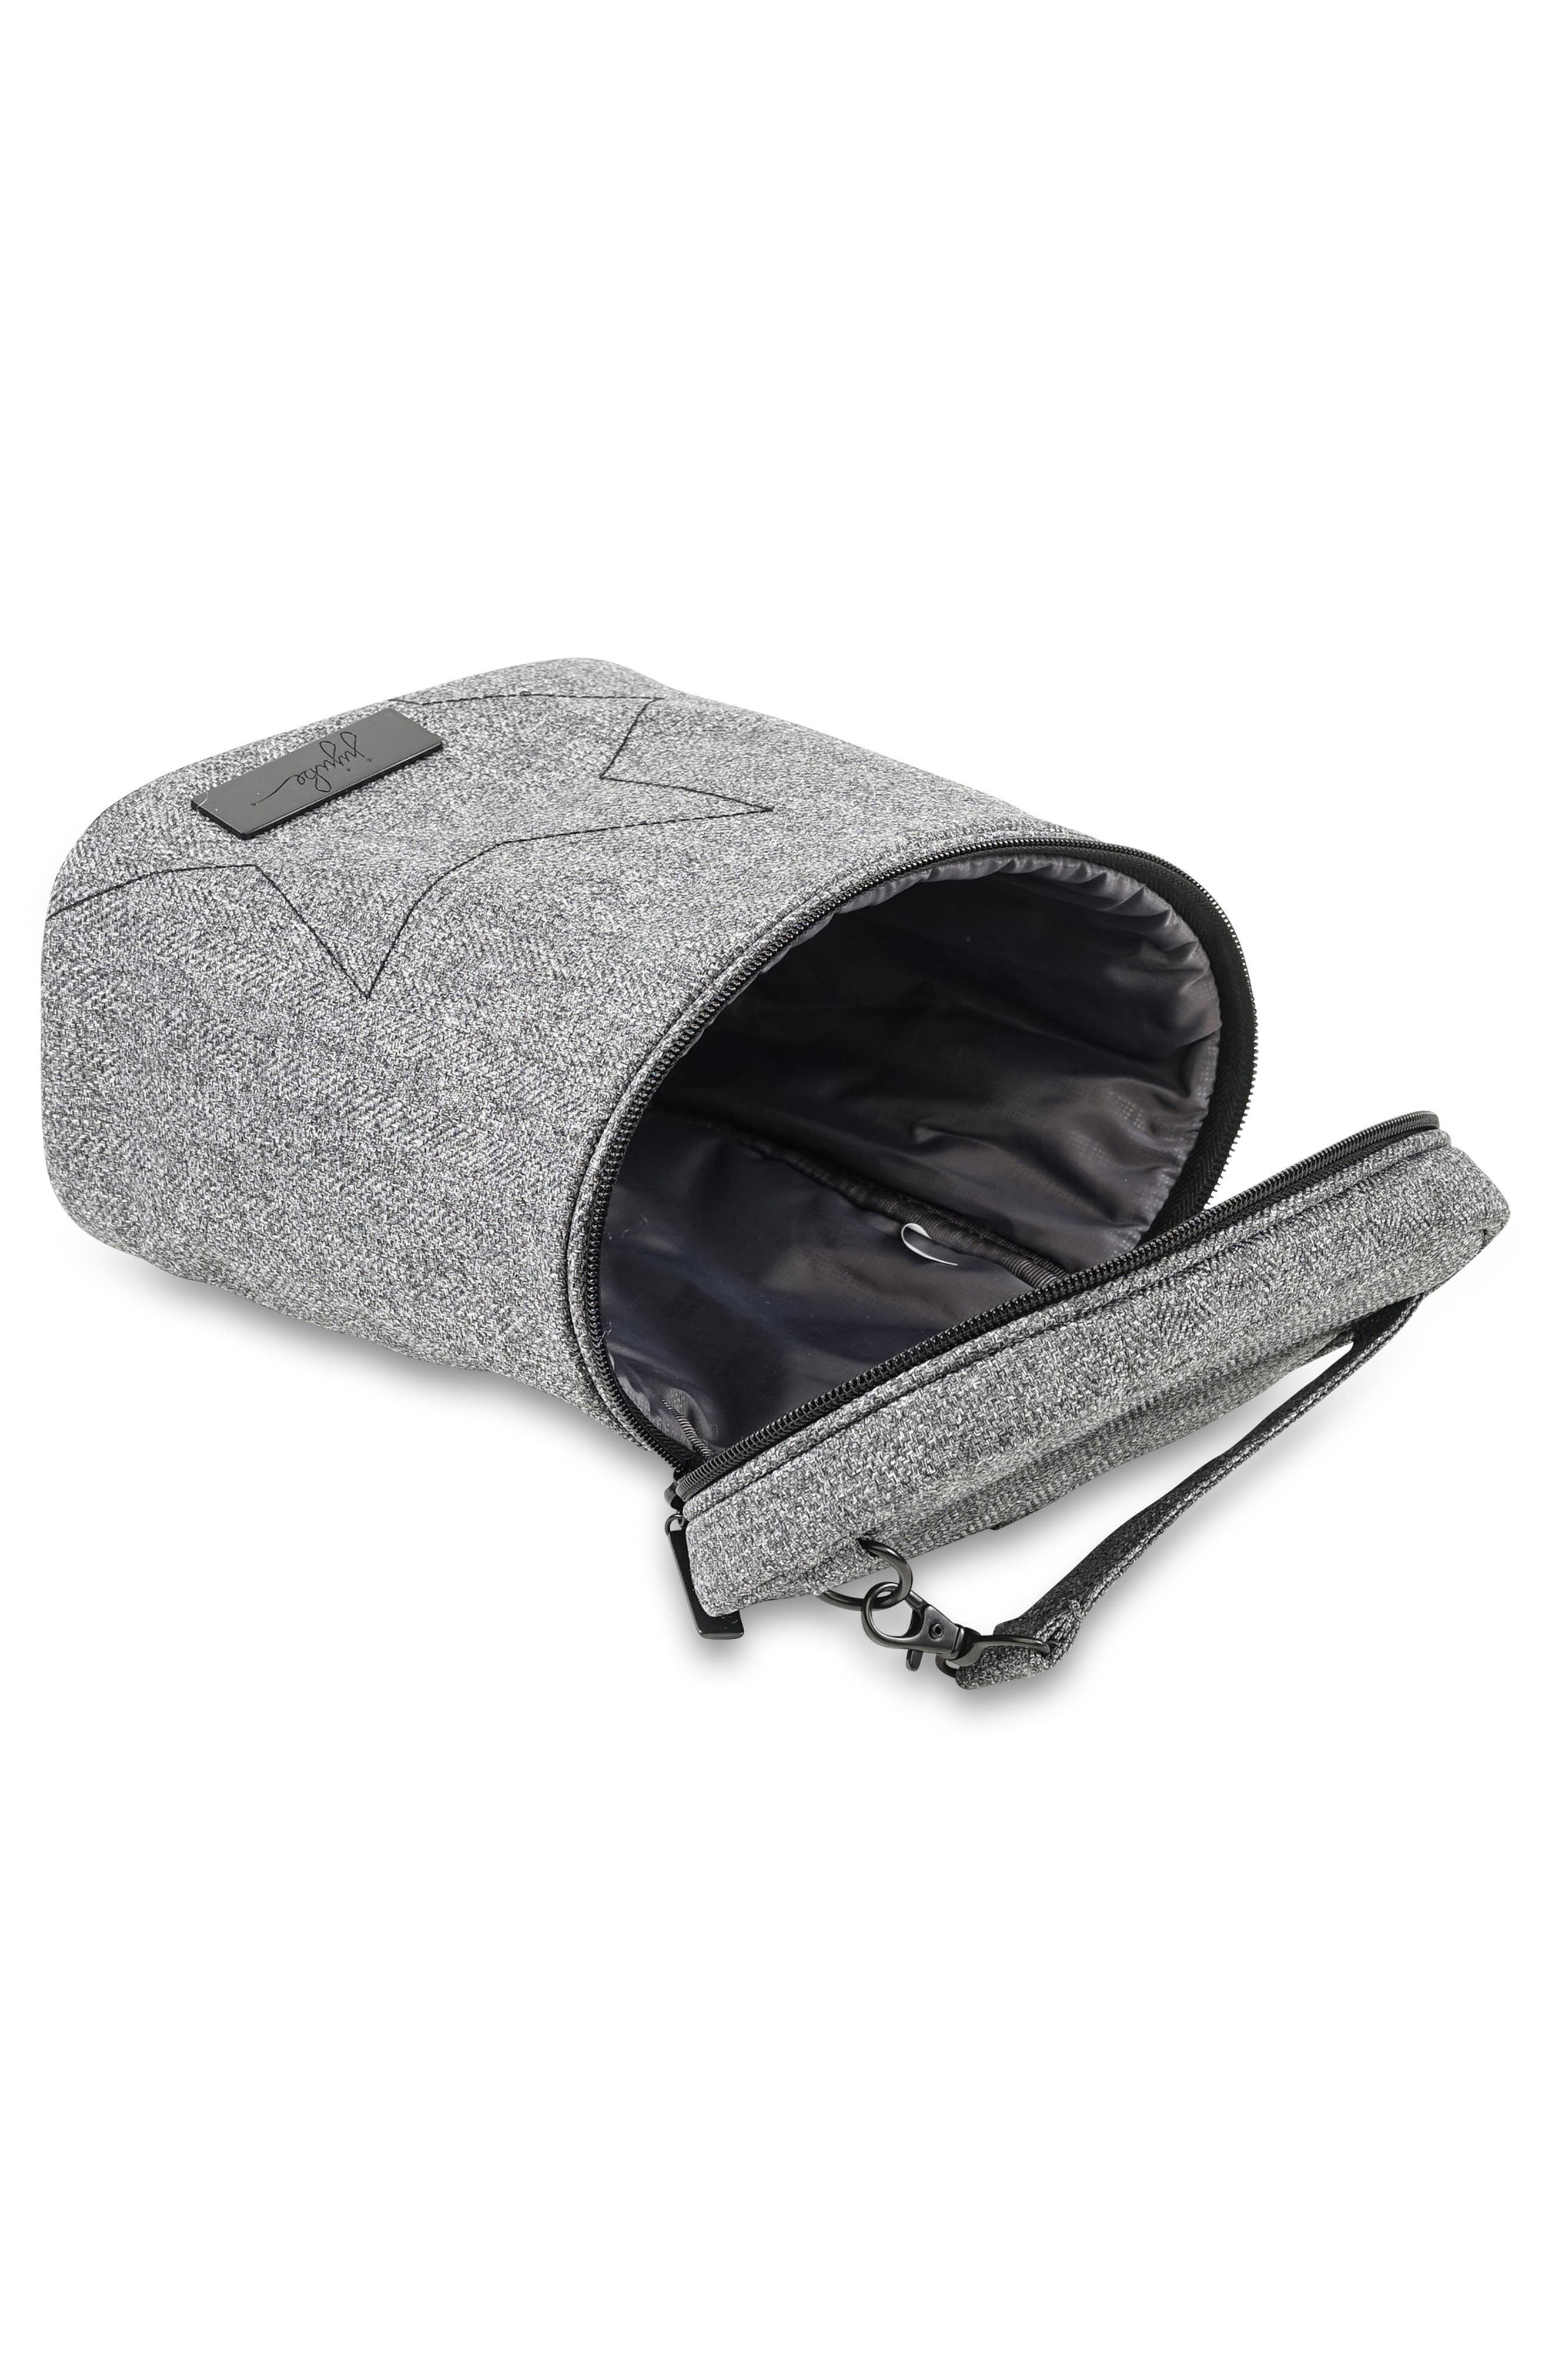 'Fuel Cell - Onyx Collection' Lunch Bag,                             Alternate thumbnail 2, color,                             GRAY MATTER